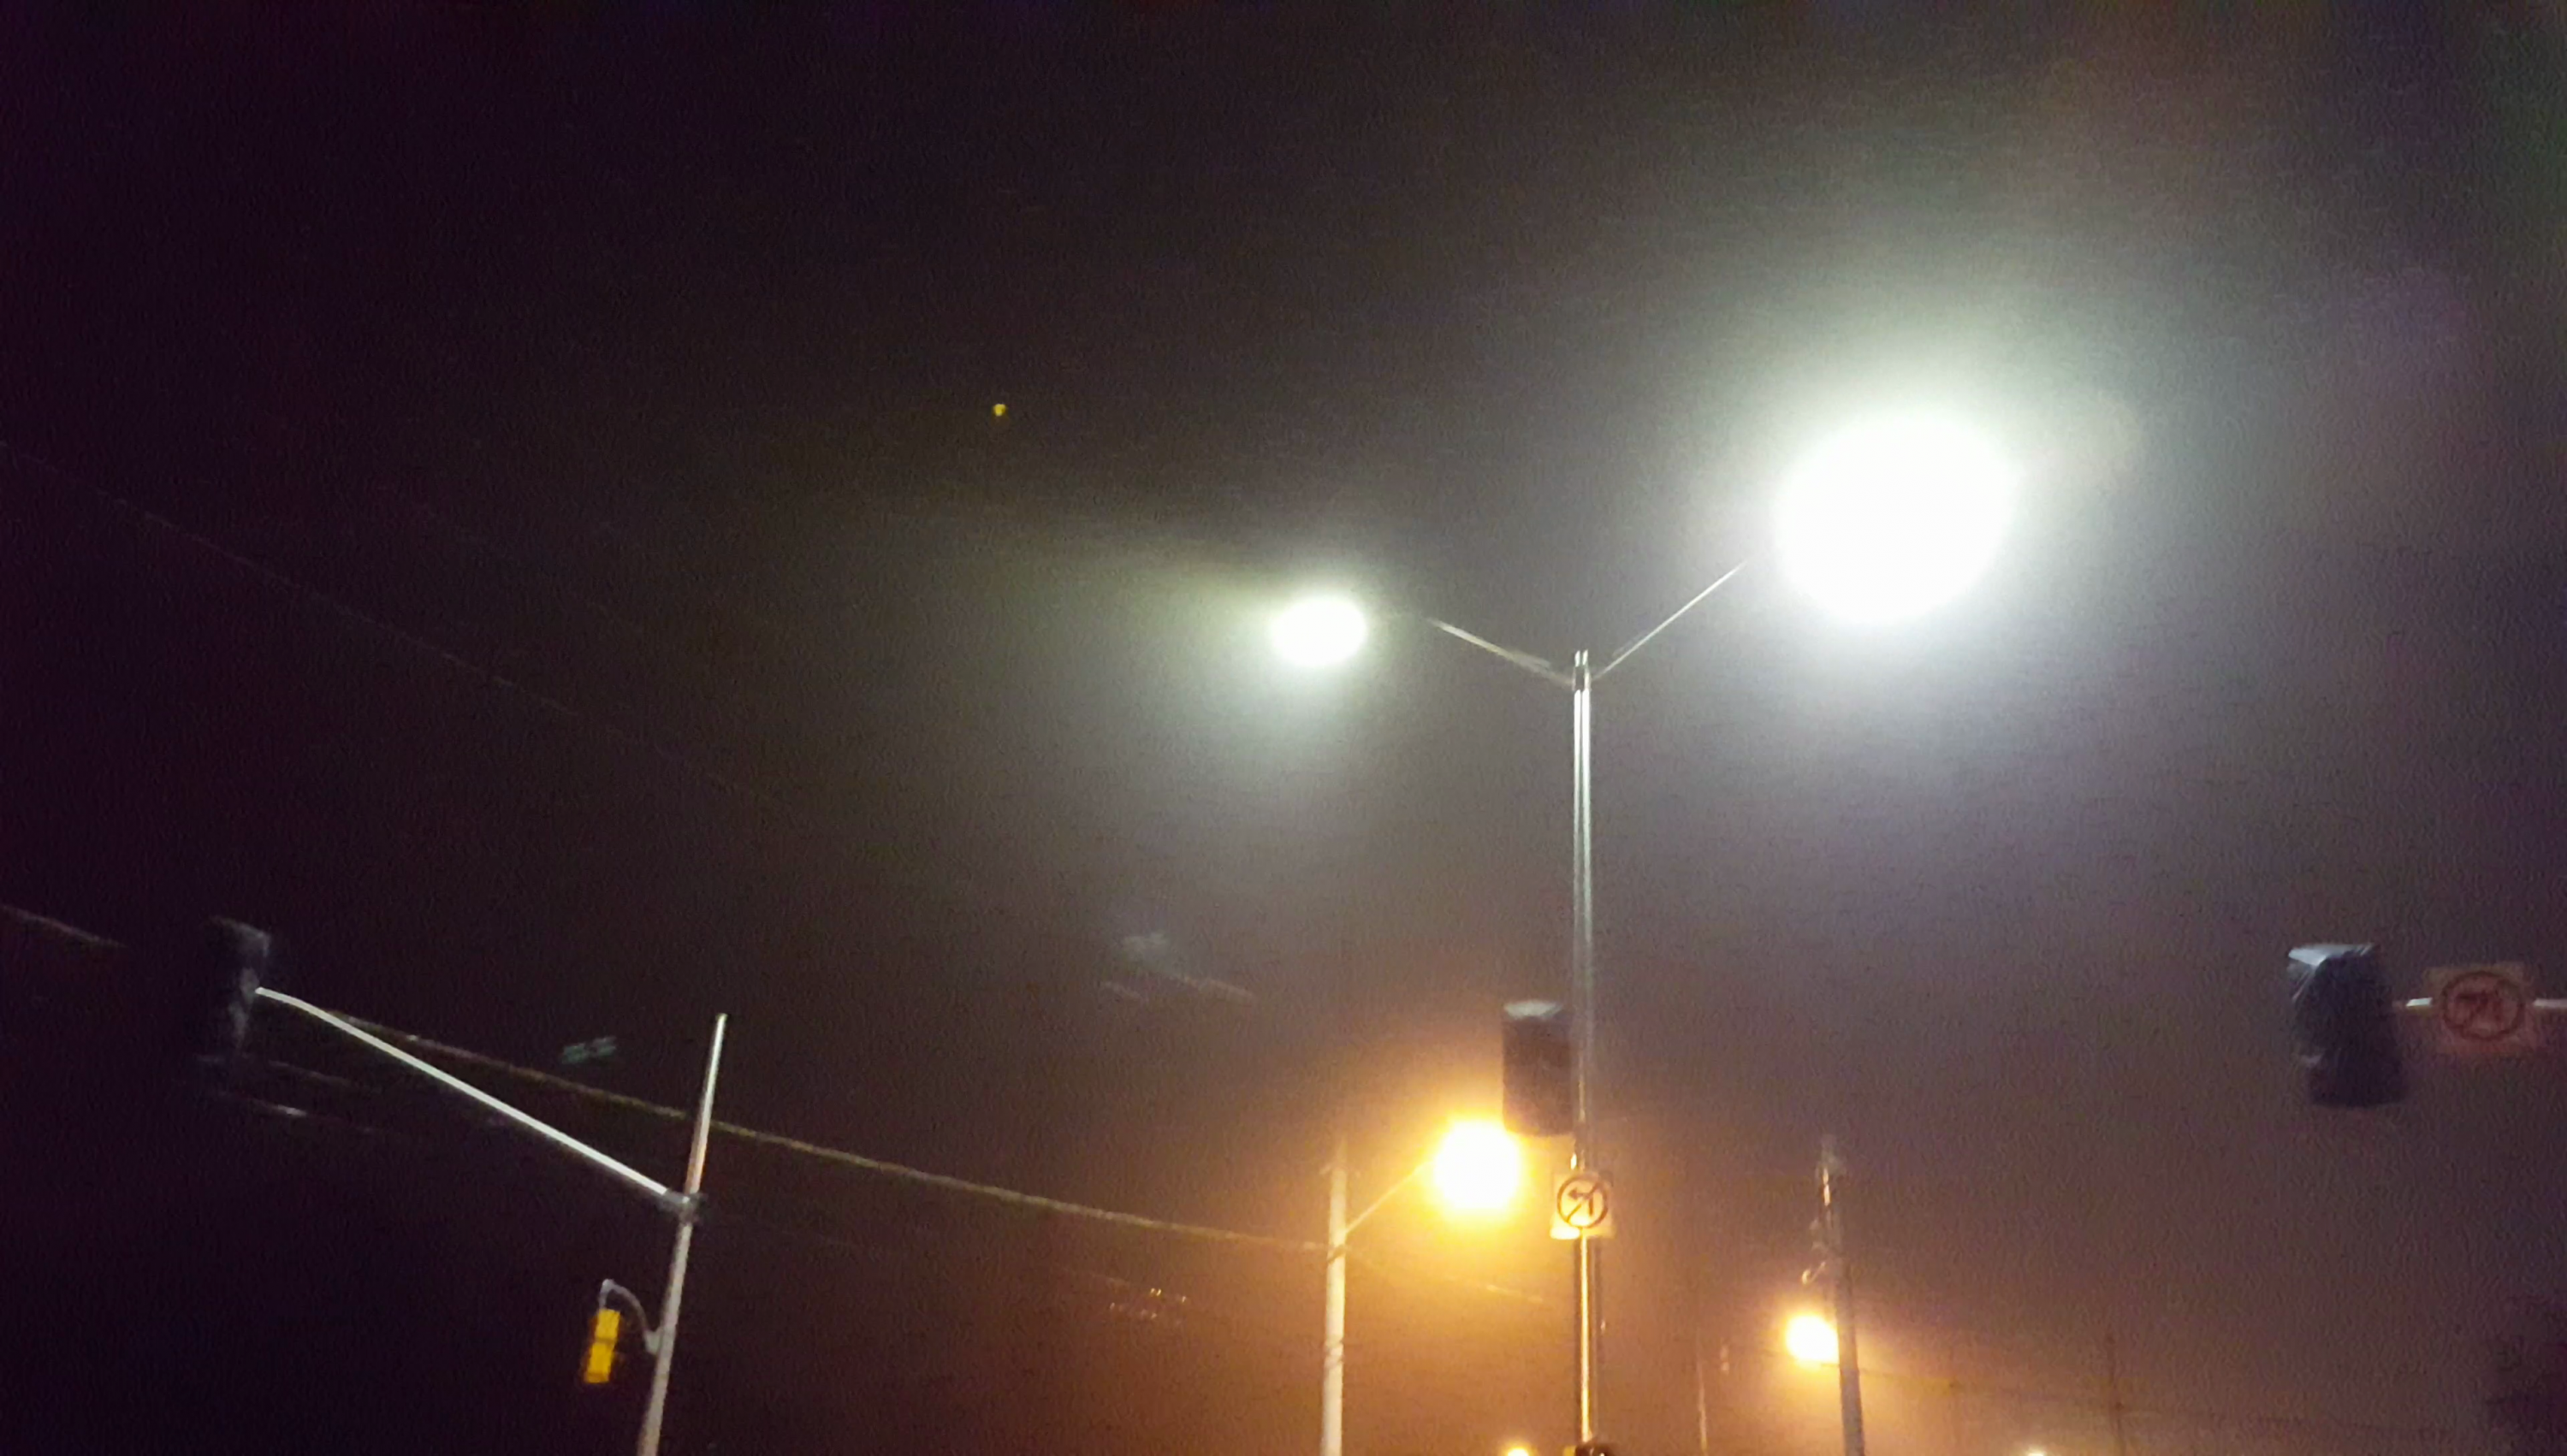 LED street lights in Kitchener, Ontario are more white in colour which has a higher blue content. This leads to increases in light pollution, skyglow and scatters more easily in the human eye disrupting night vision.